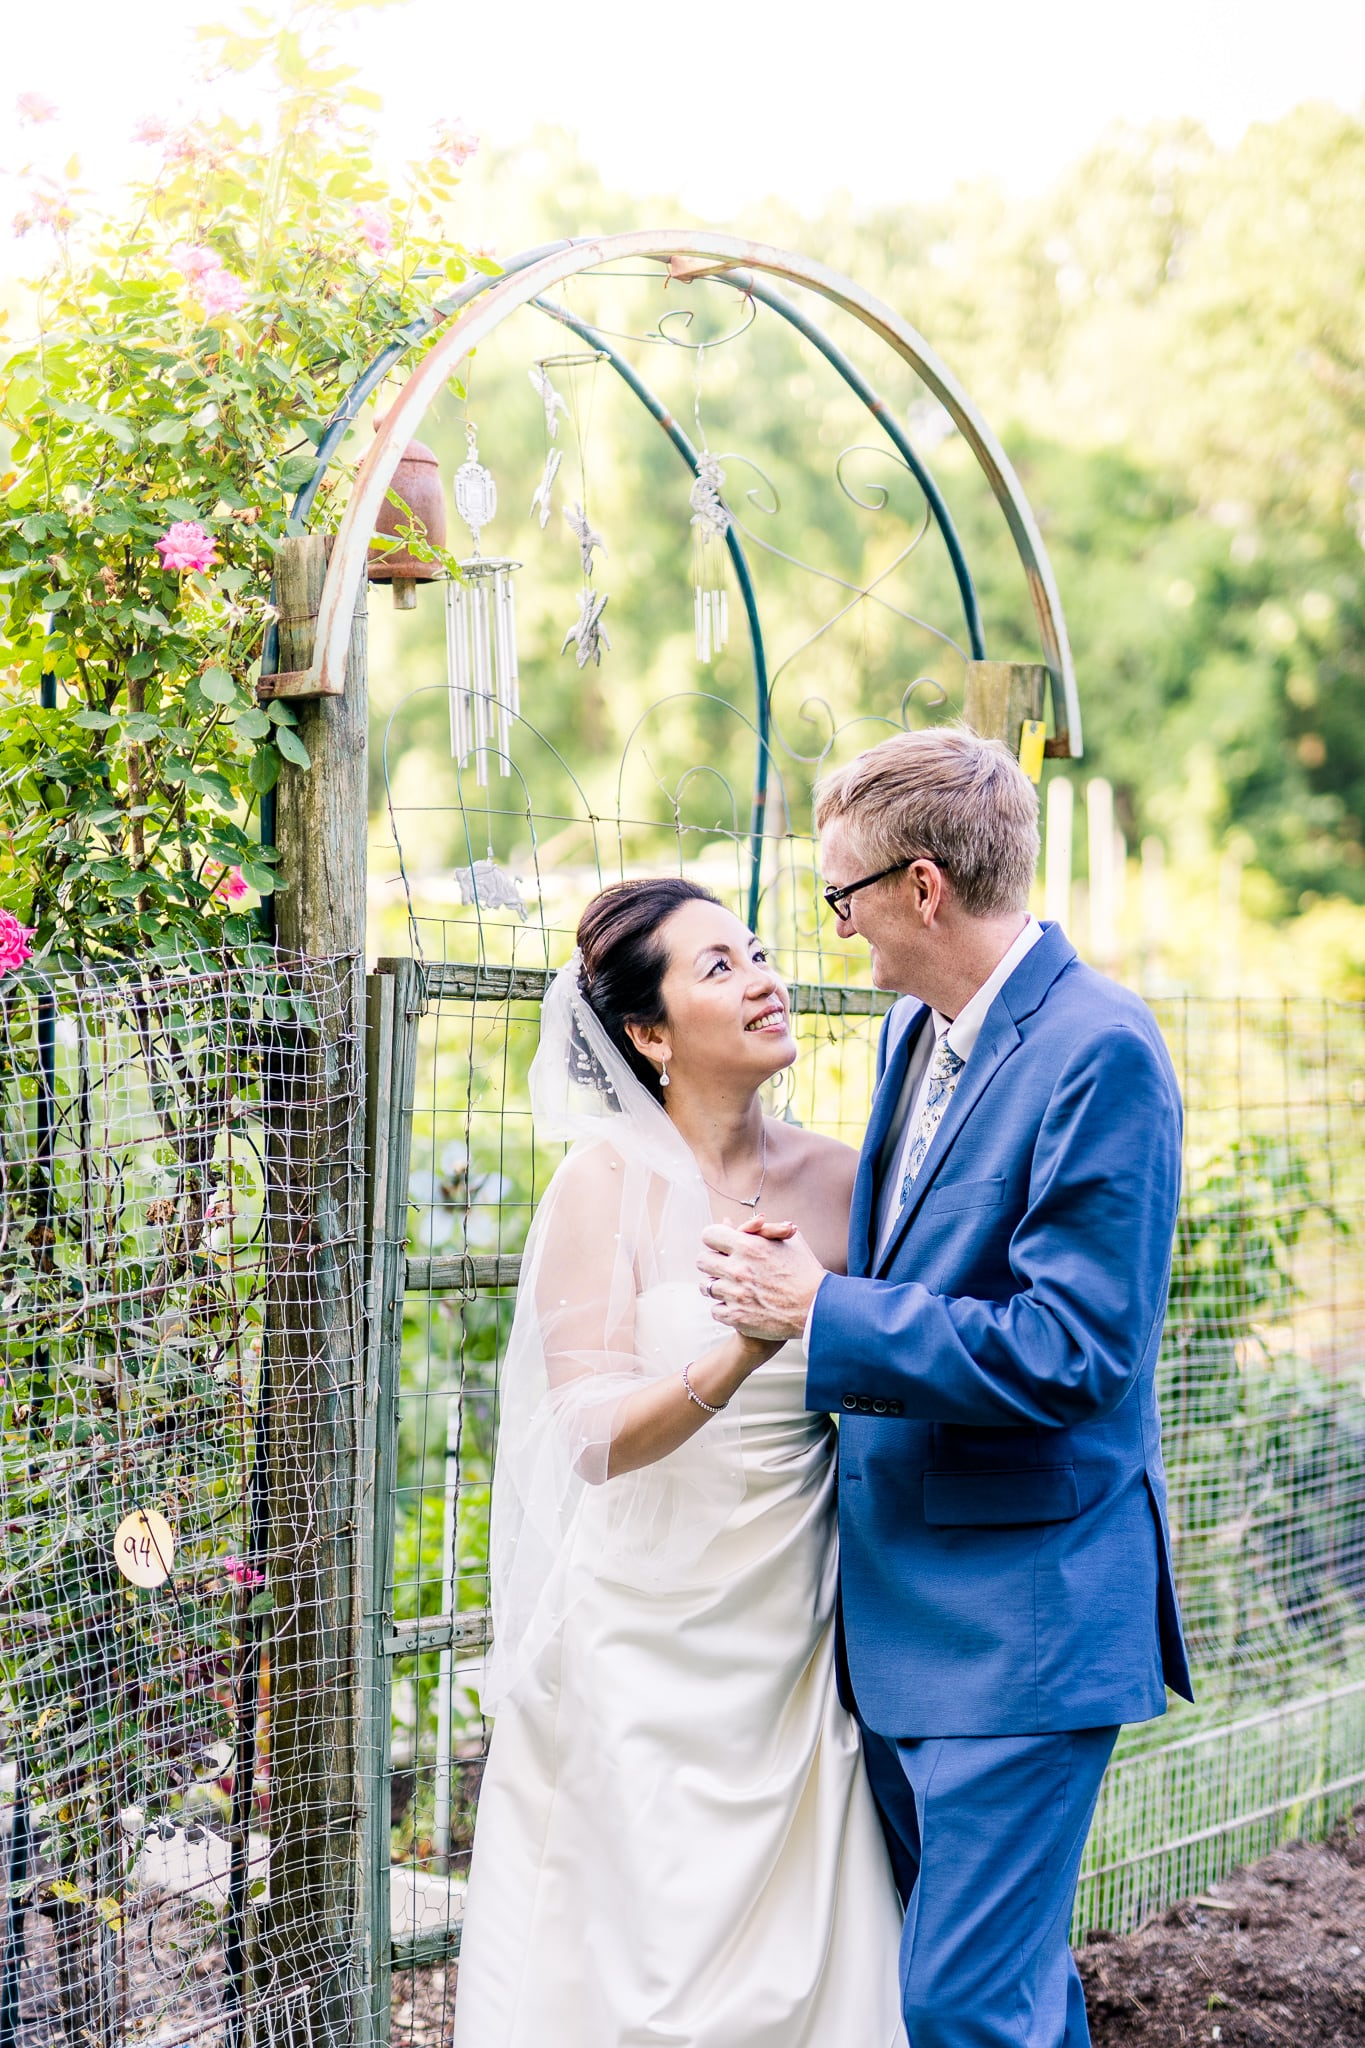 A Taiwanese bride looks at her groom in the community gardens at Nottoway Park after their wedding in Vienna, Northern Virginia